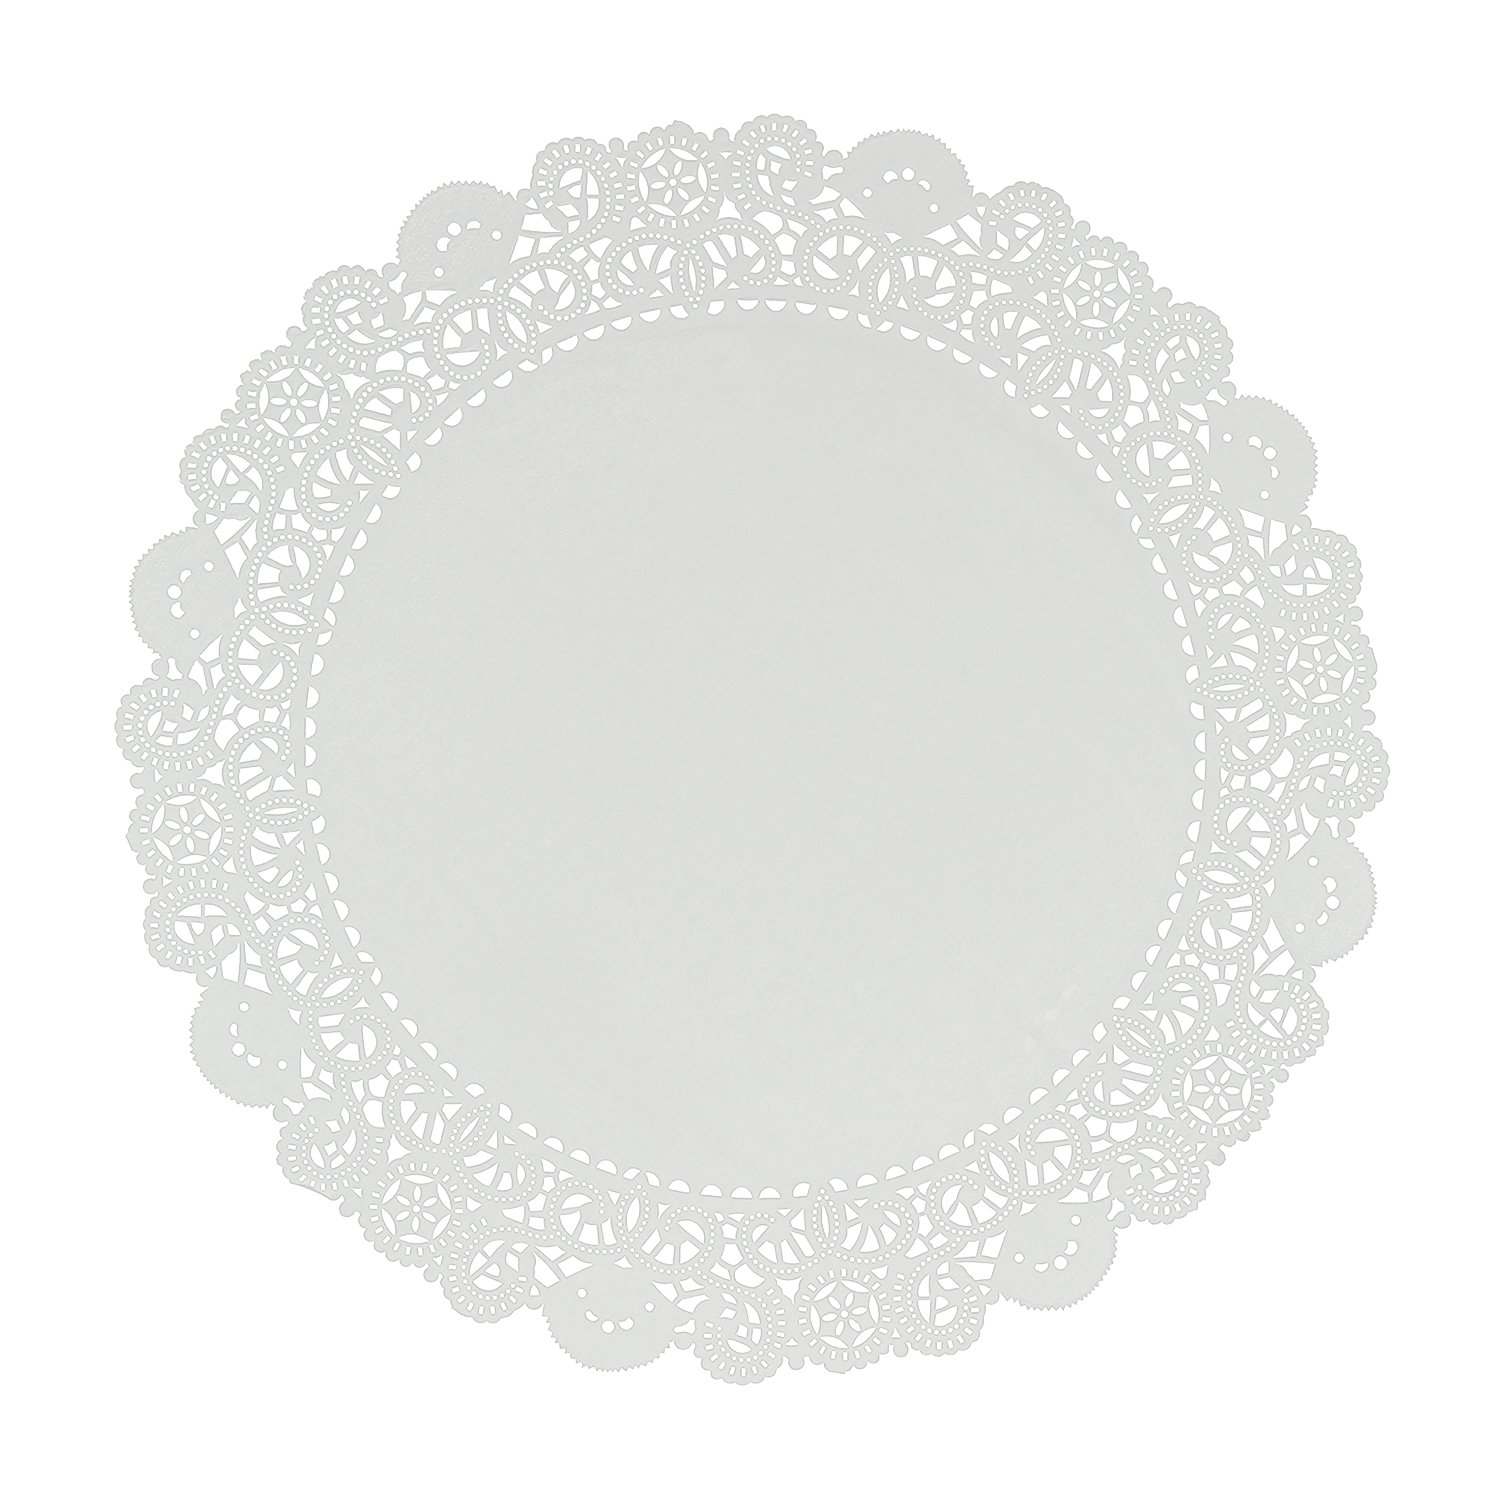 Royal 16'' Disposable Paper Lace Doilies, Package of 250